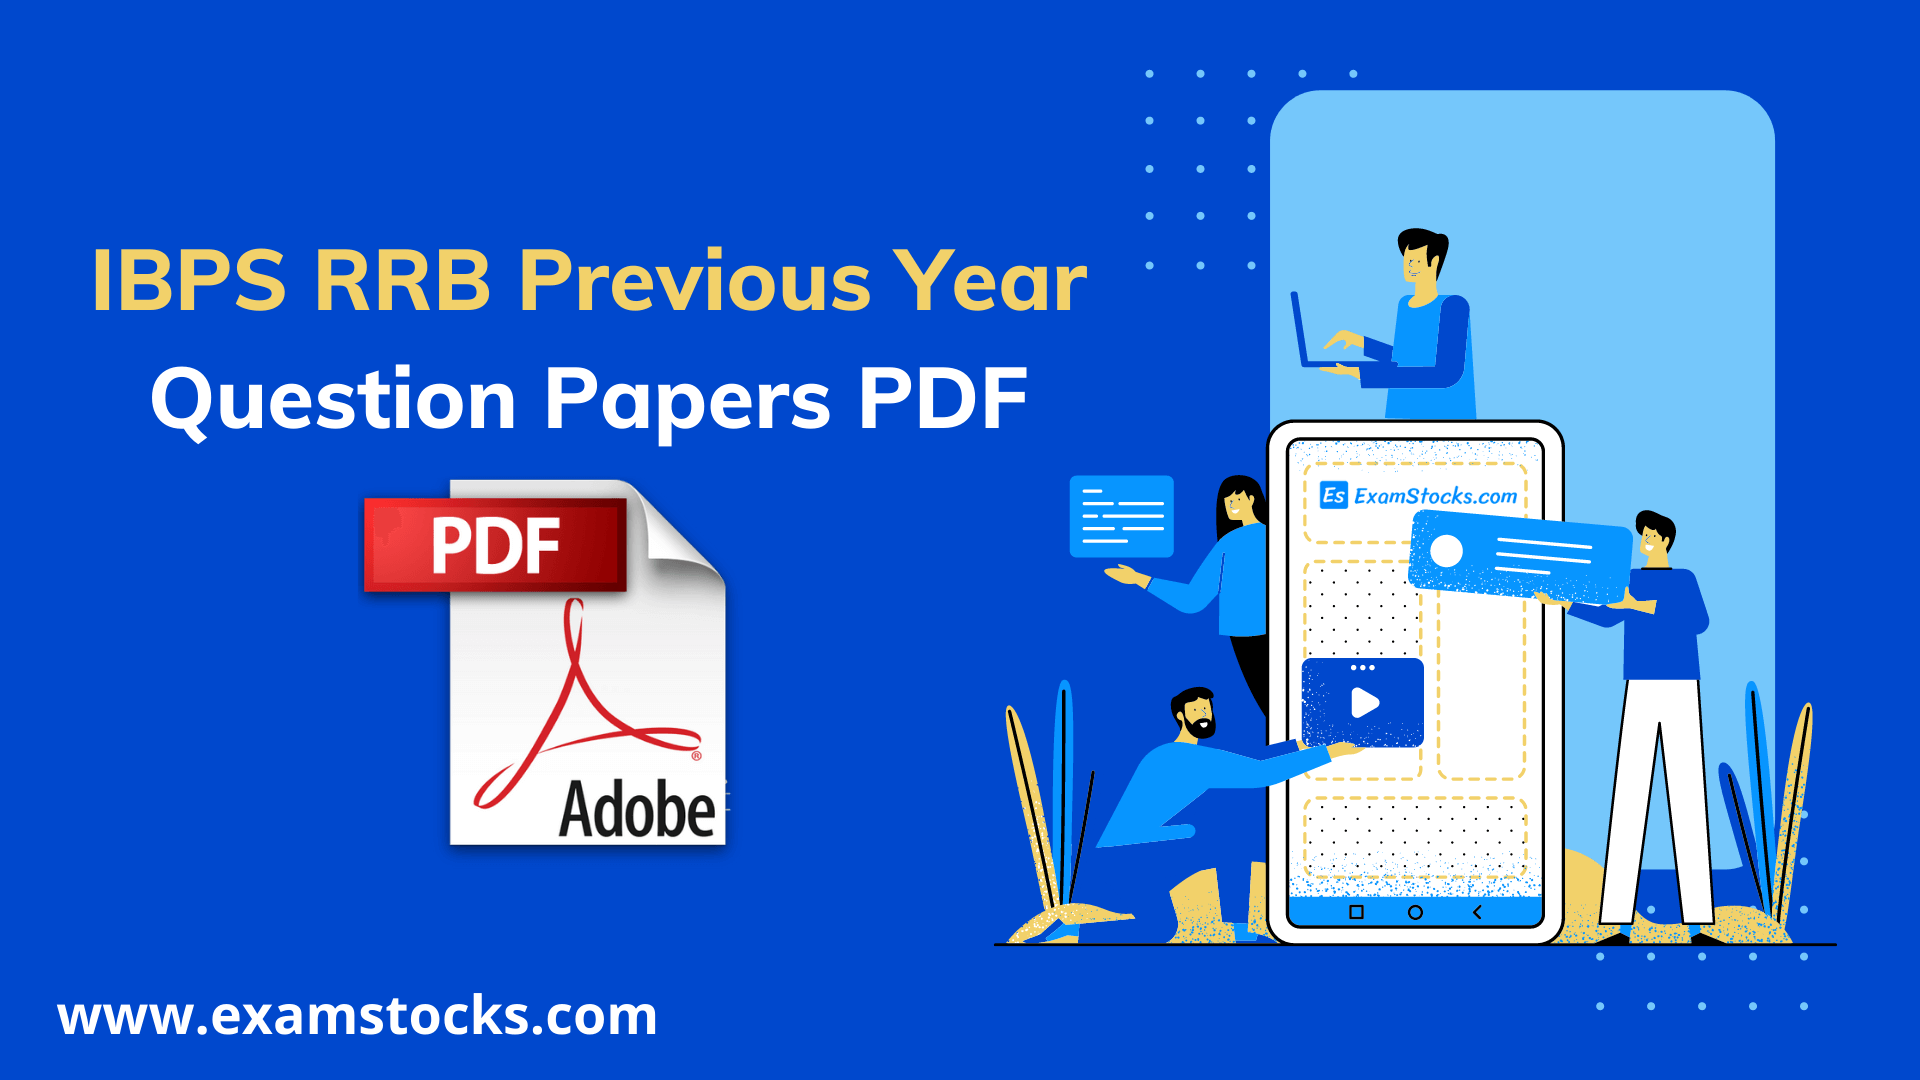 IBPS RRB Previous Year Question Papers PDF Download Now